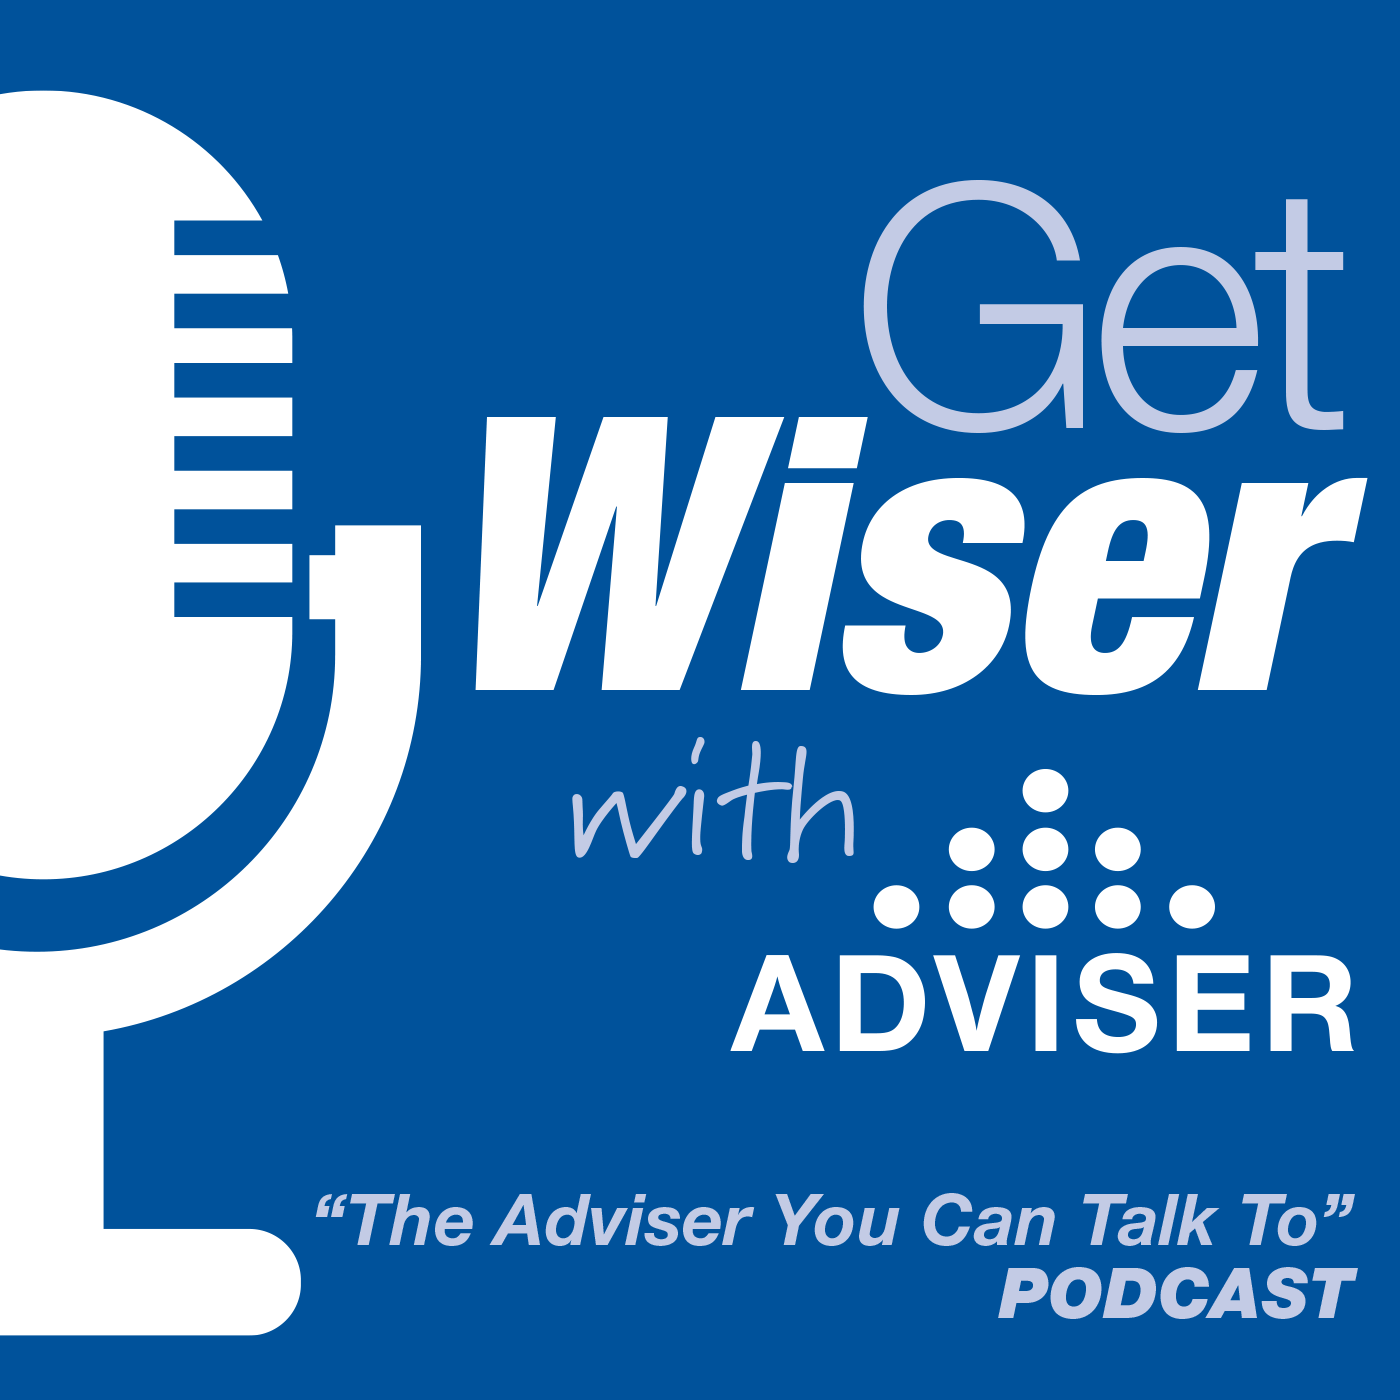 The Adviser You Can Talk To Podcast show art